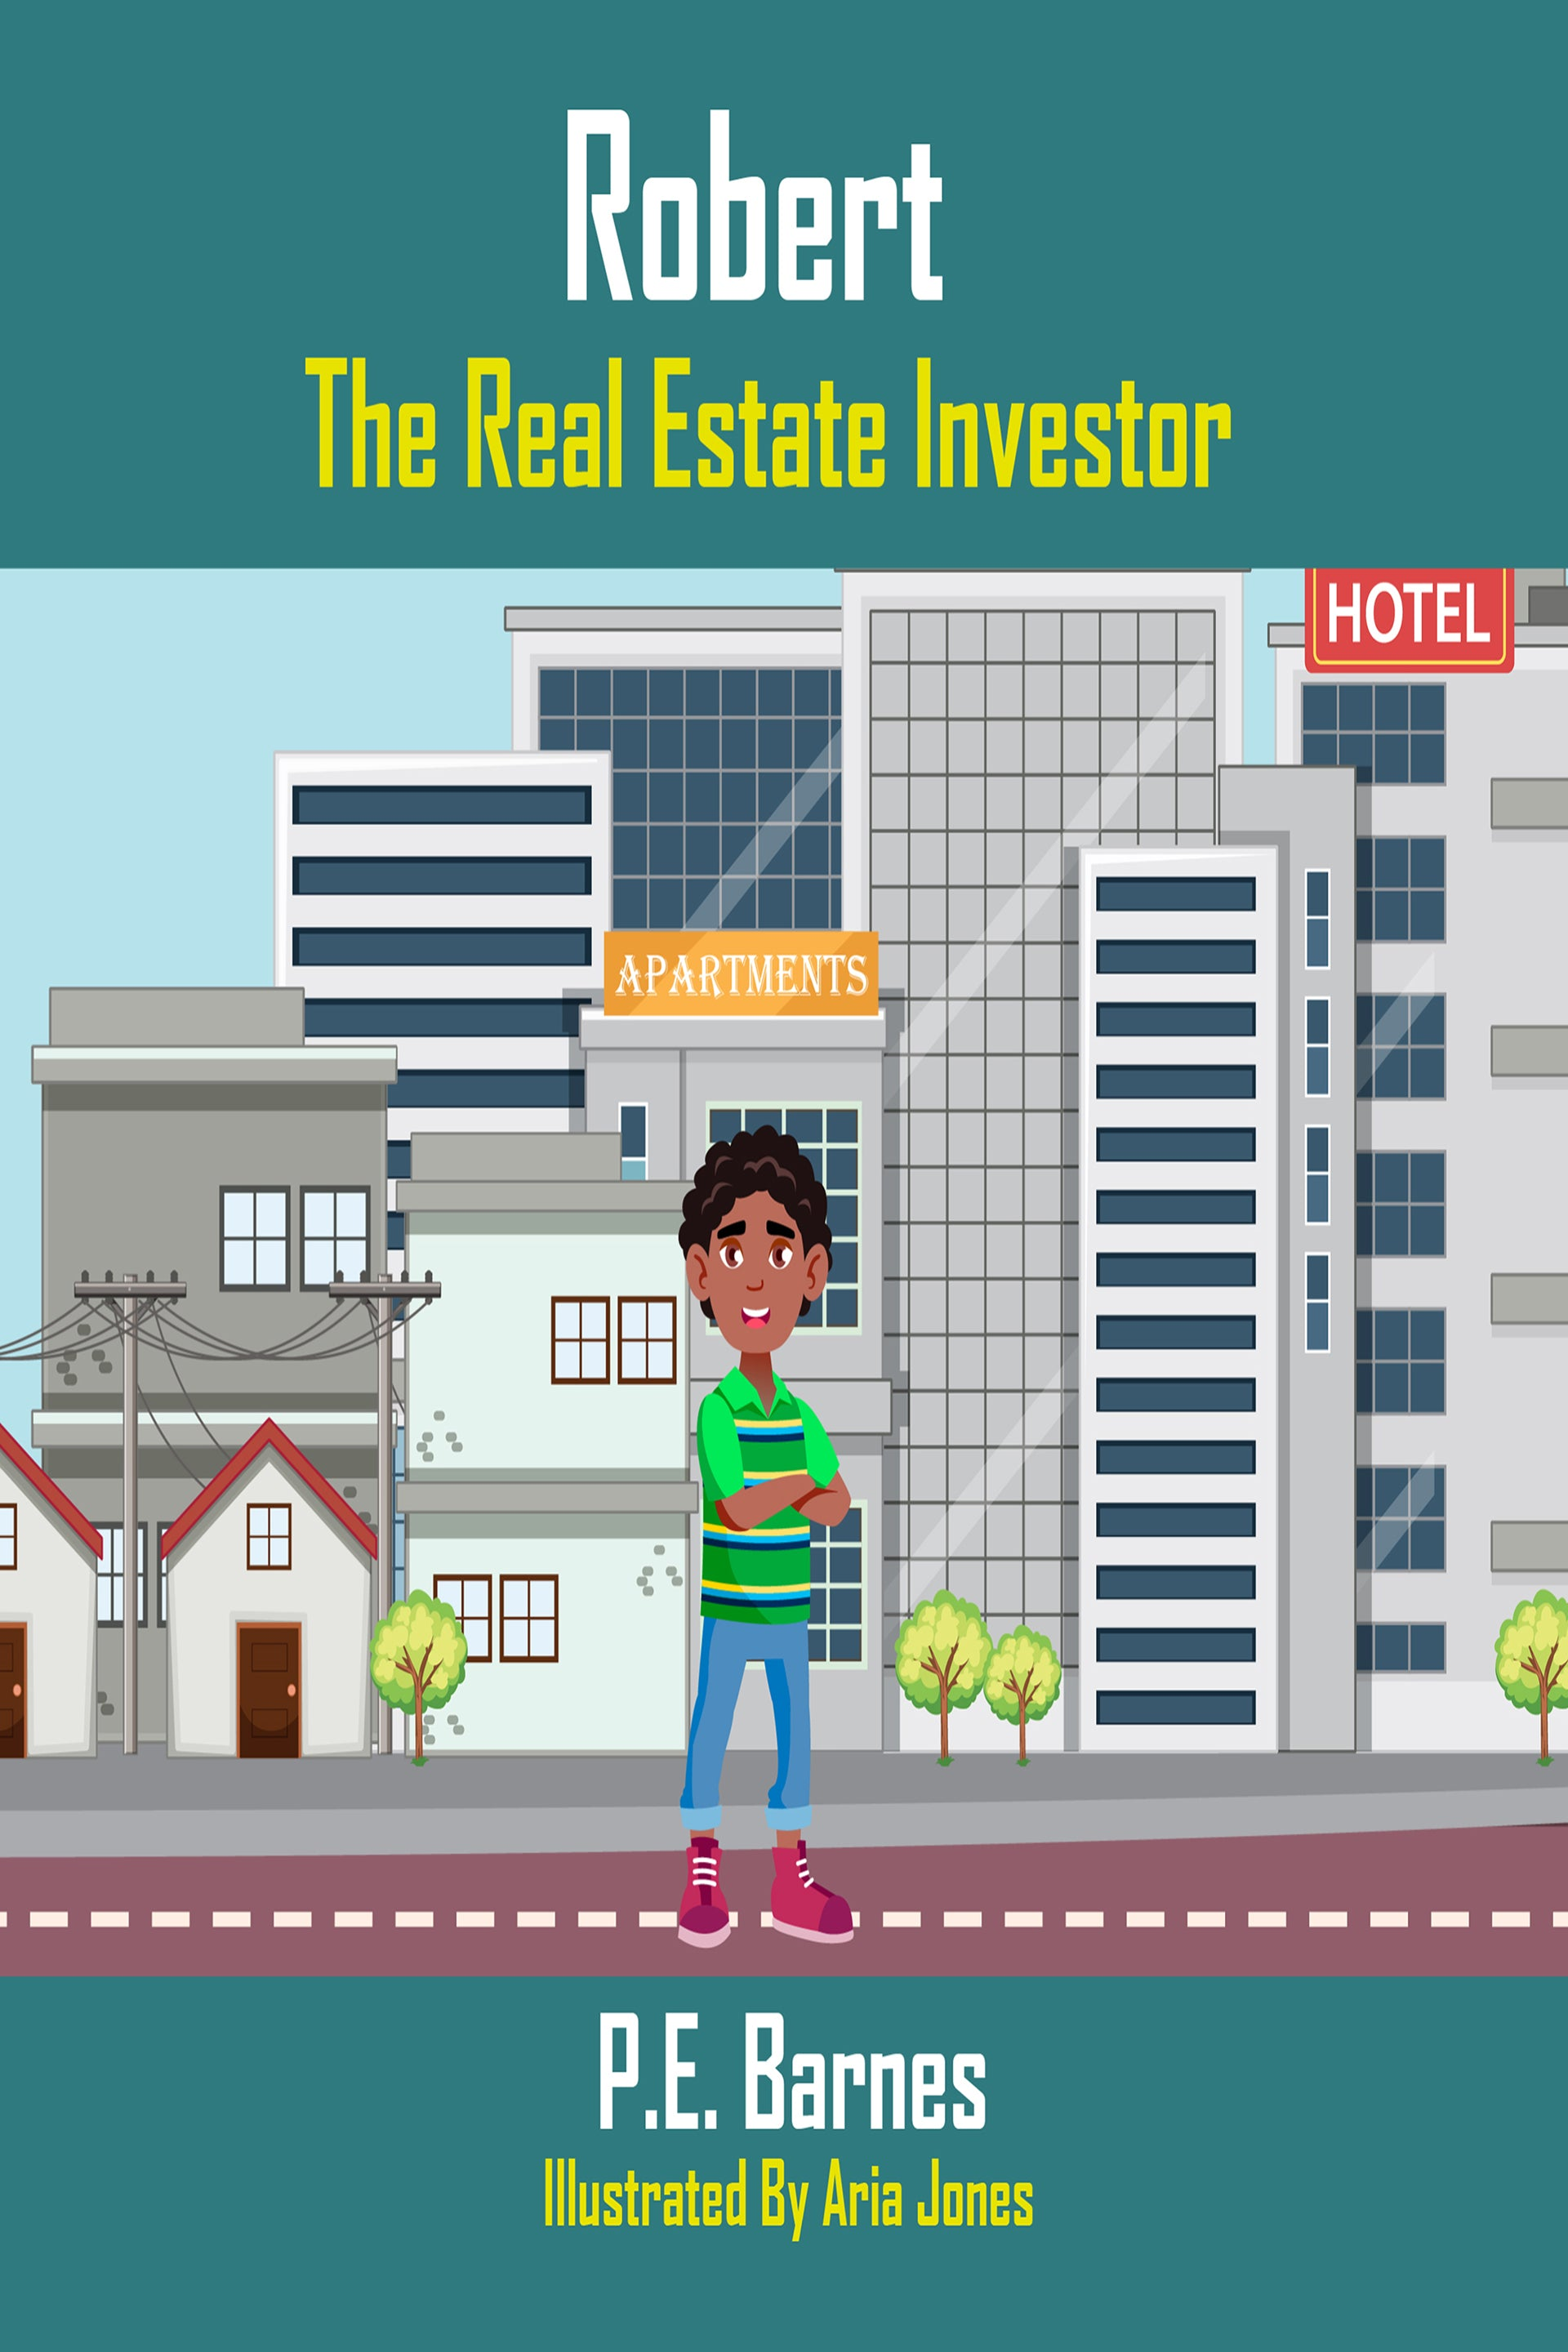 Robert The Real Estate Investor (Ages 9-12)